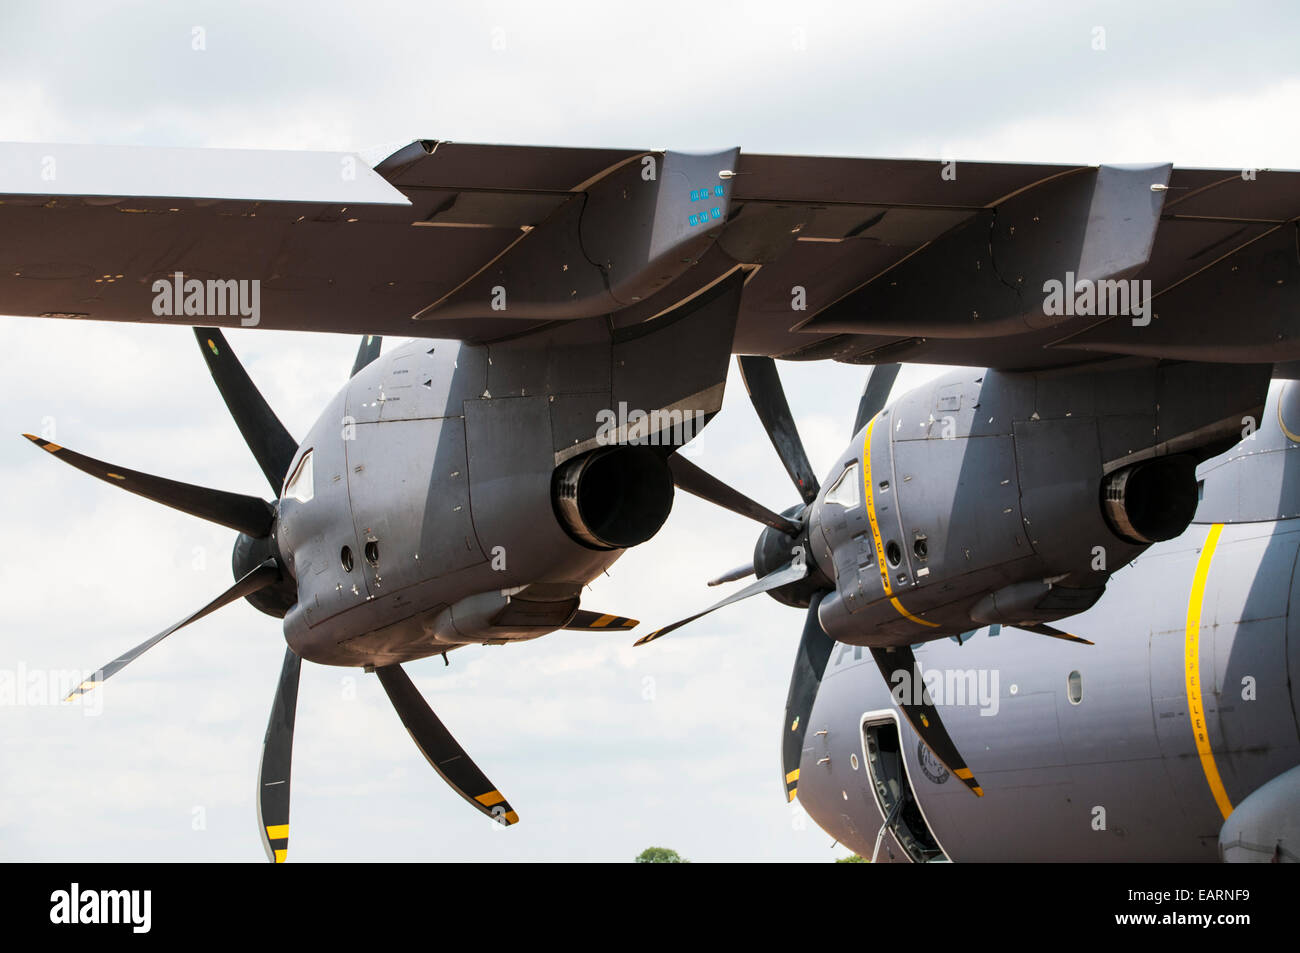 View of the huge turboprop engines from under the wing of an Airbus A400M transport plane - Stock Image